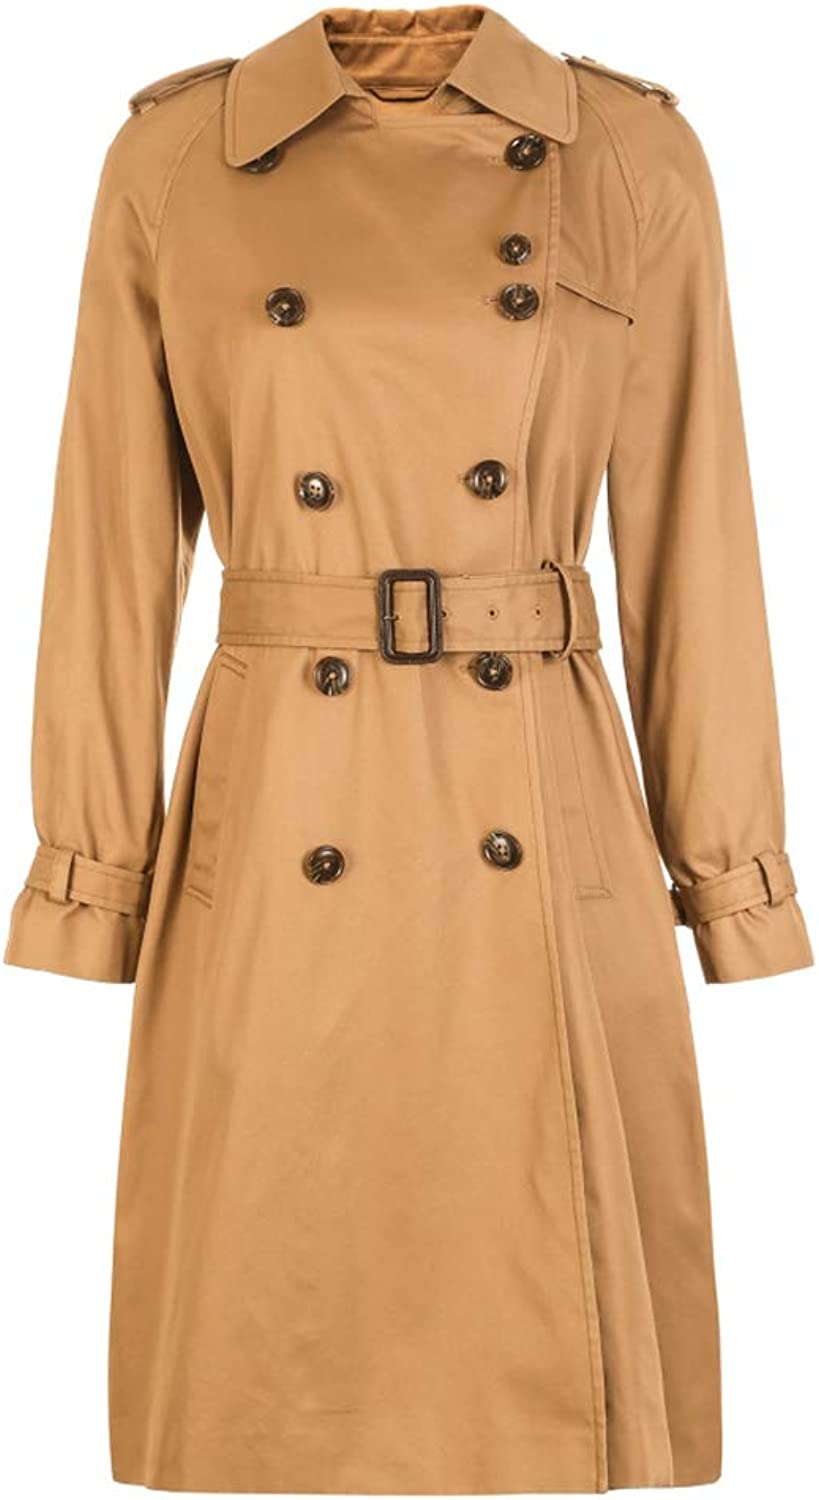 Trench Coat Women's MidLength Trench Coat Lapel Jacket Cotton Jacket DoubleBreasted Spring Trench Coat Detachable Belt (color   Khaki, Size   170 88A L)